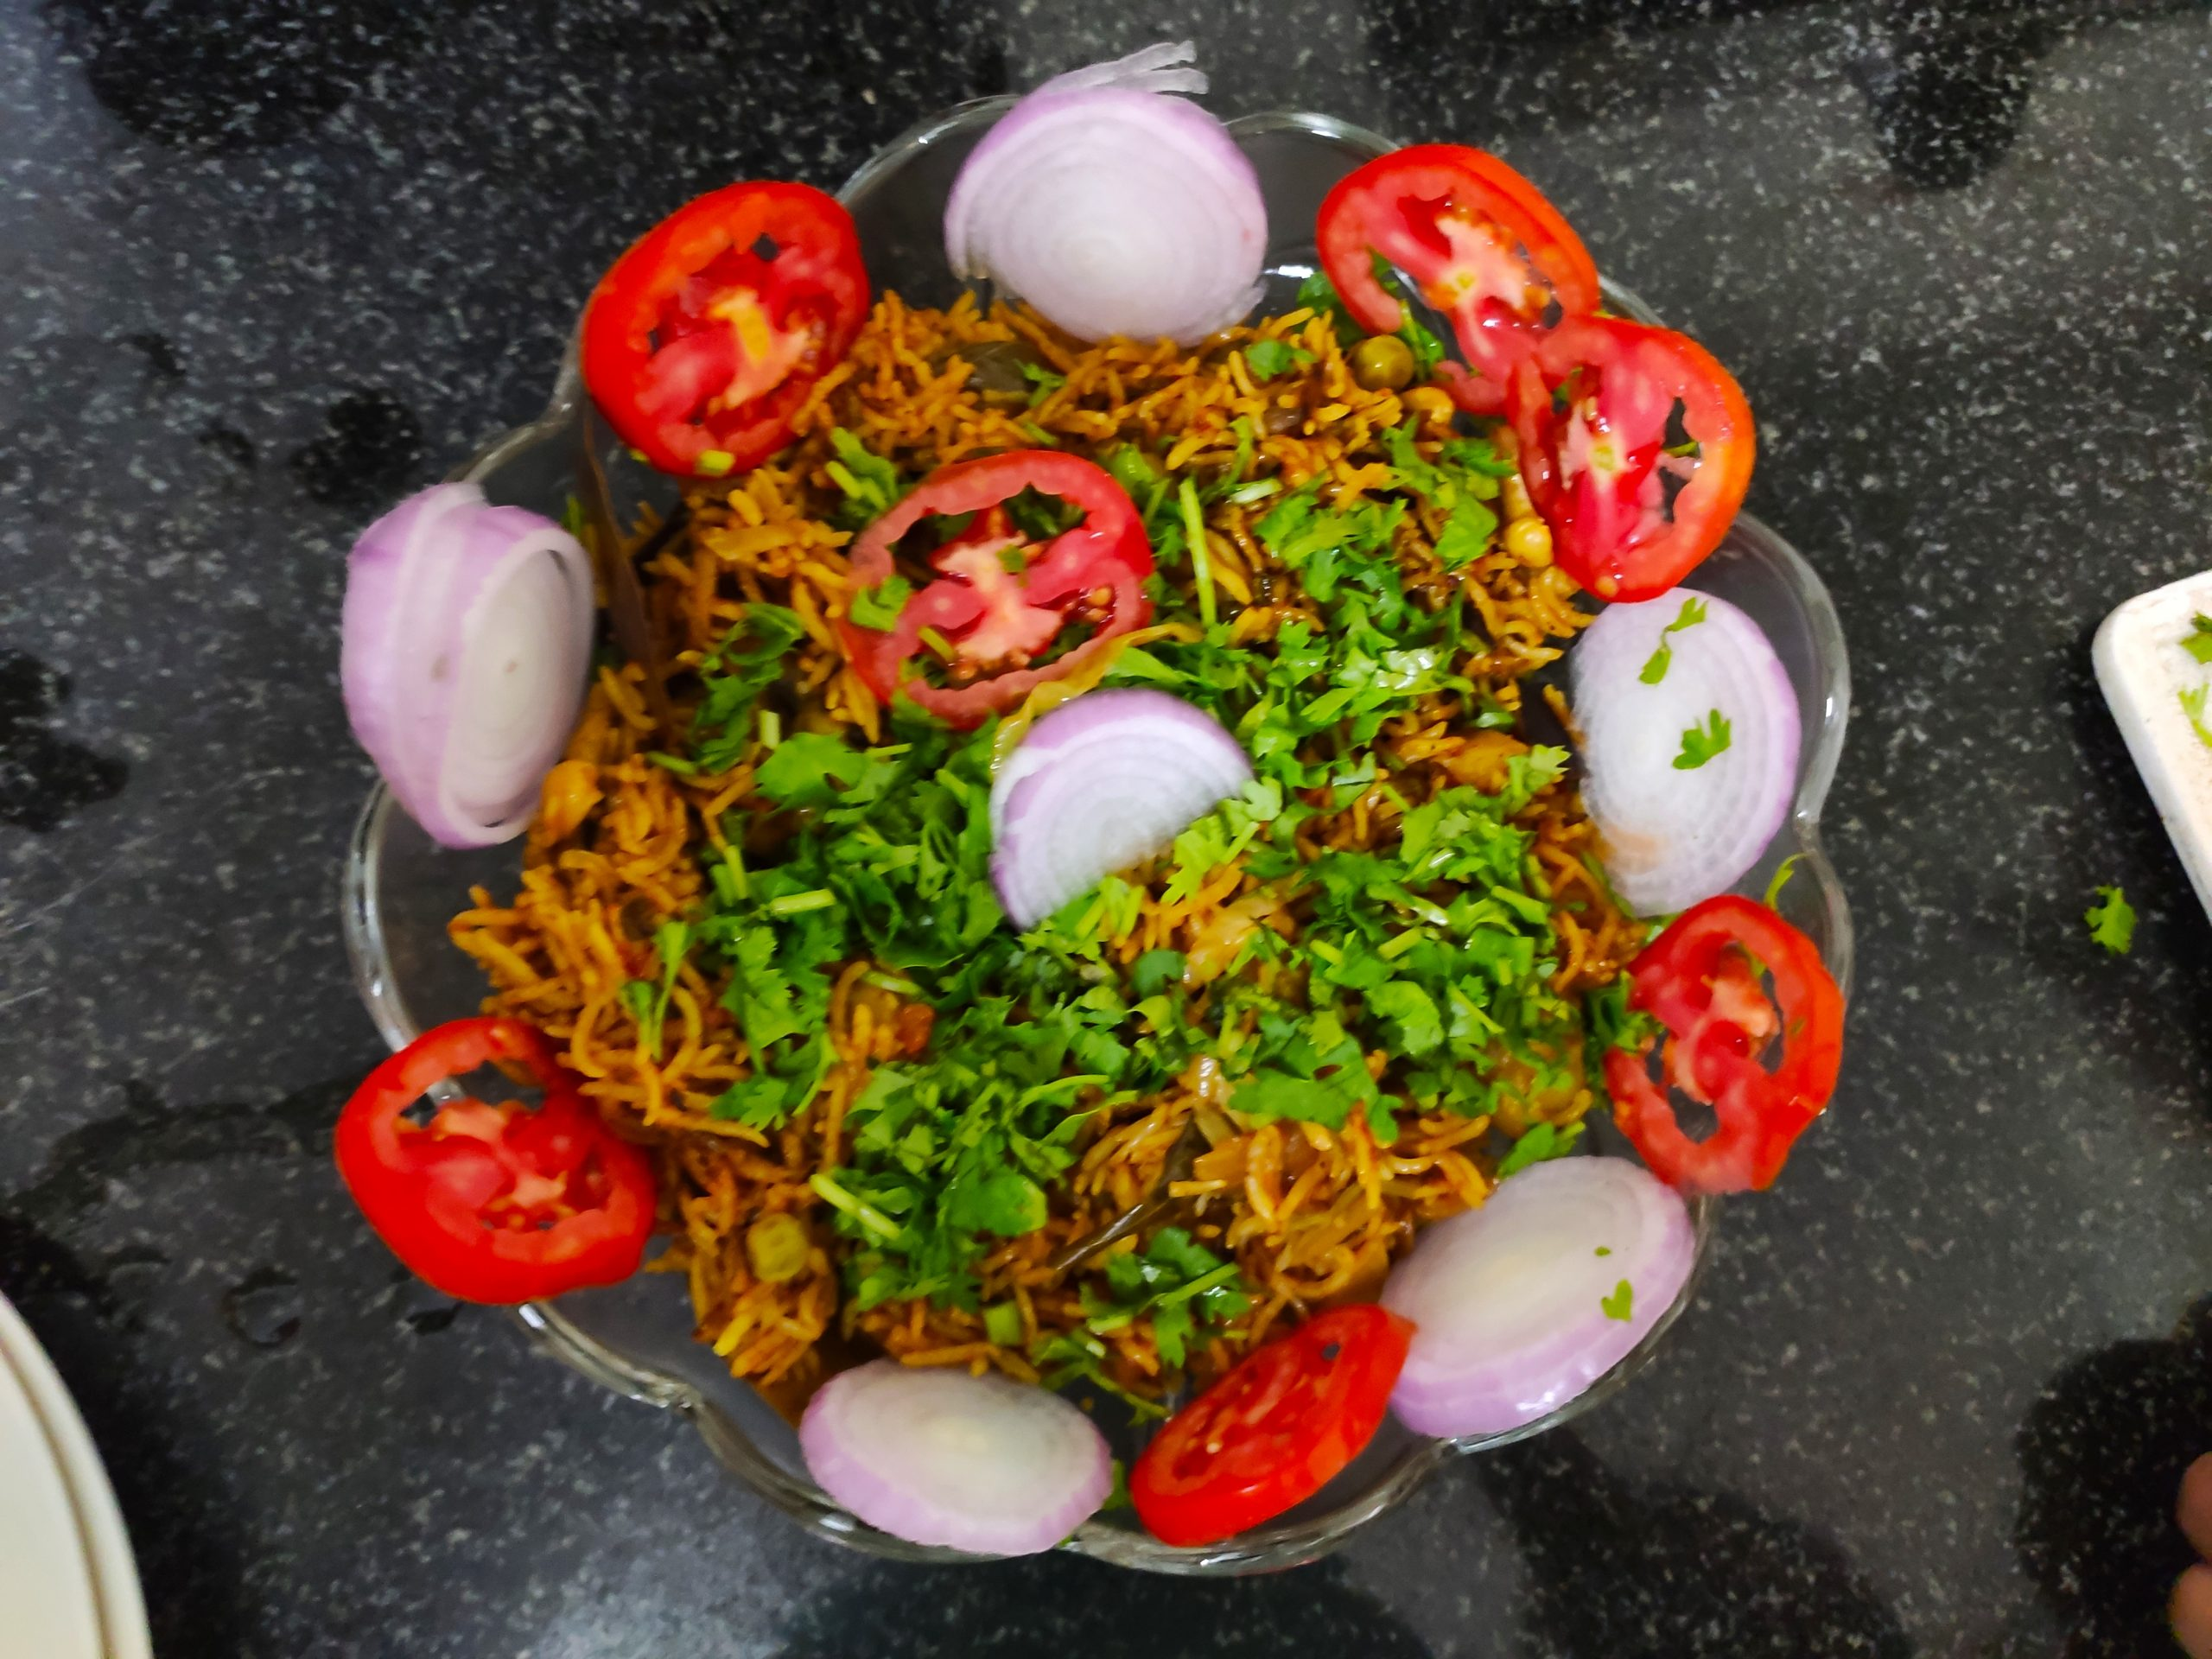 Veg biryani in a bowl